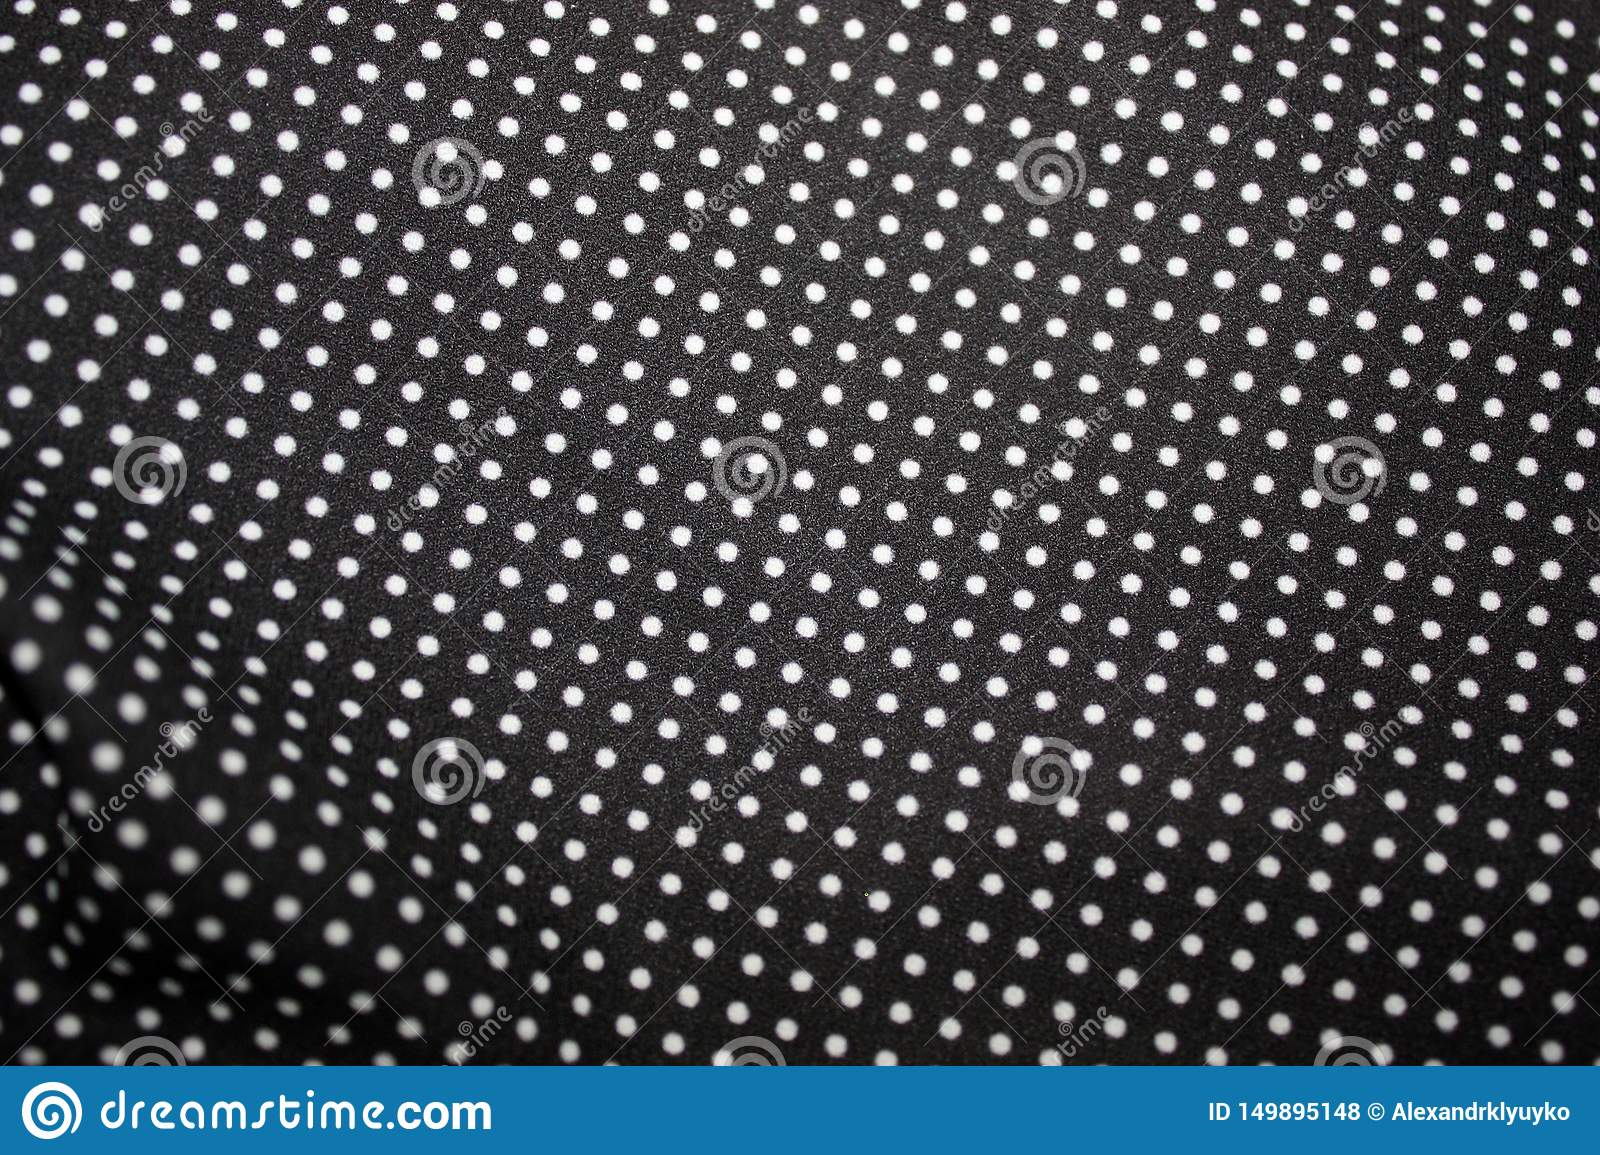 Black fabric and white tiny polka dot background, close-up